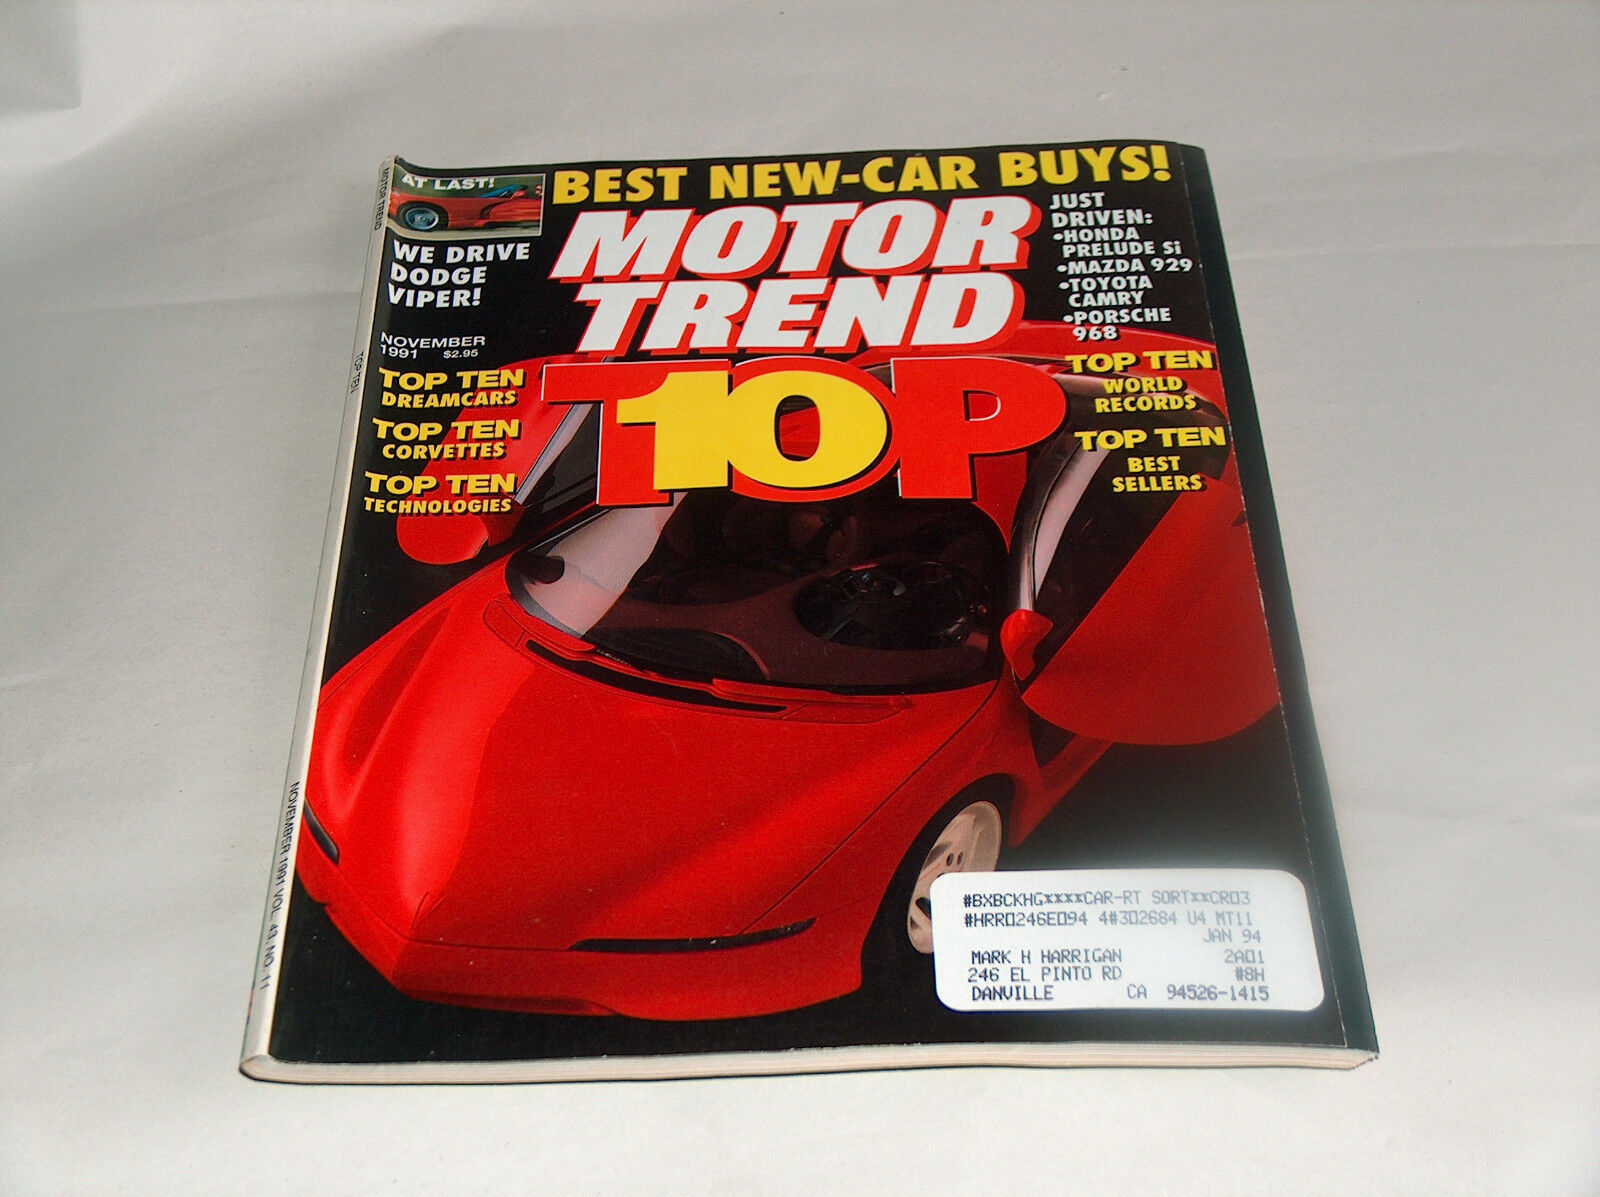 Primary image for Motor Trend 1991 Car Truck Vehicle Magazine Top 10 Dream Vettes, Records, Seller